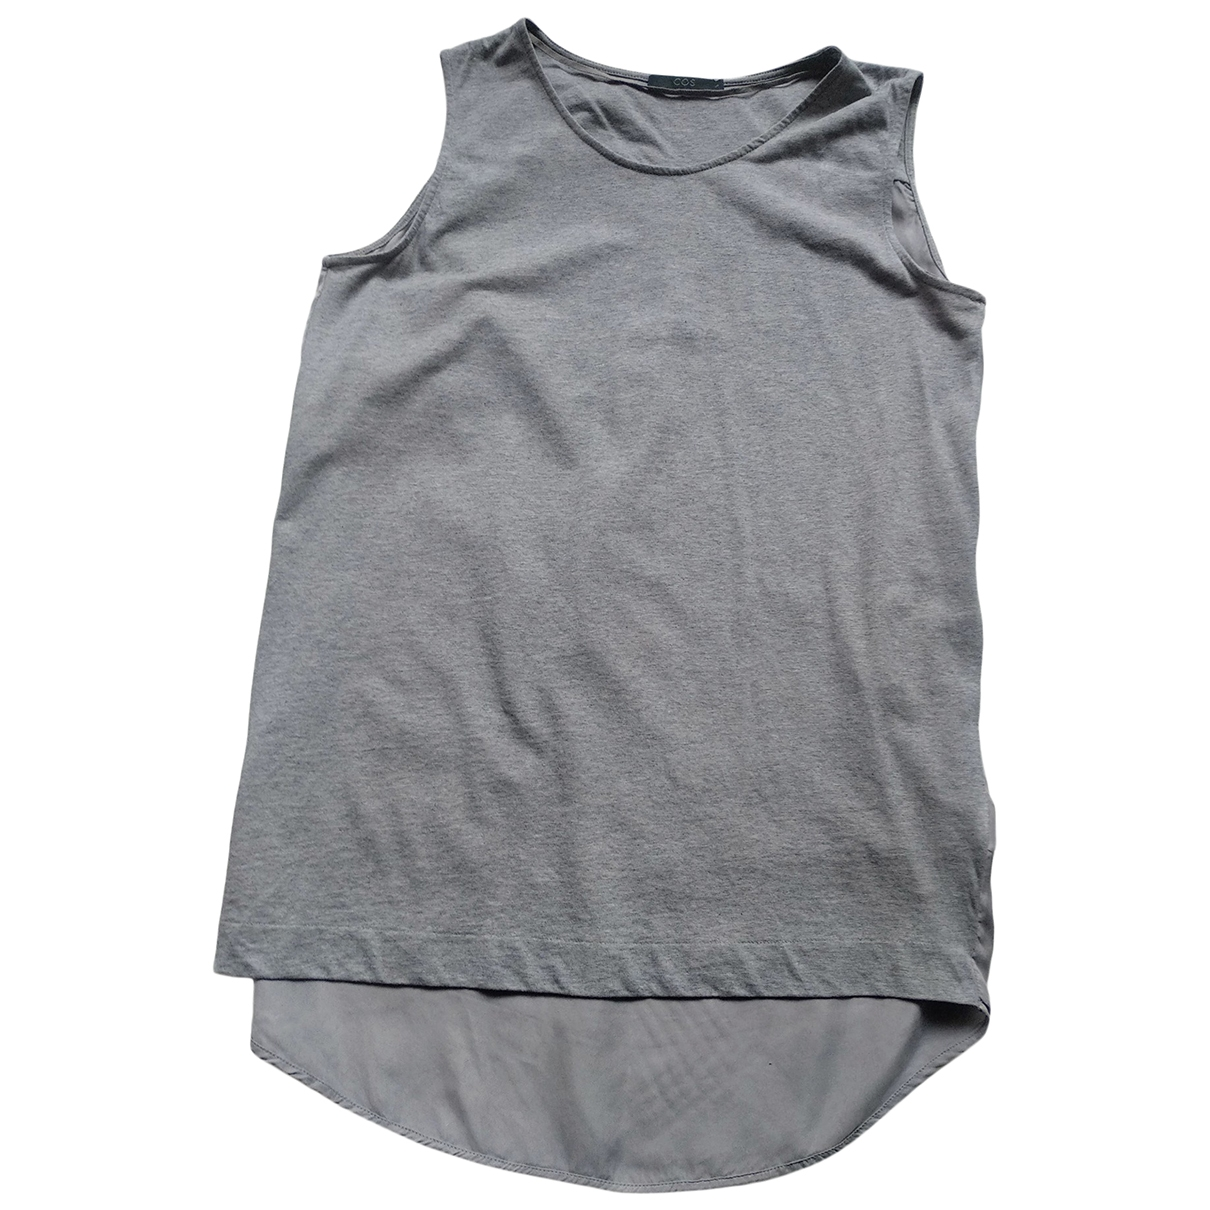 Cos \N Grey Cotton  top for Women S International